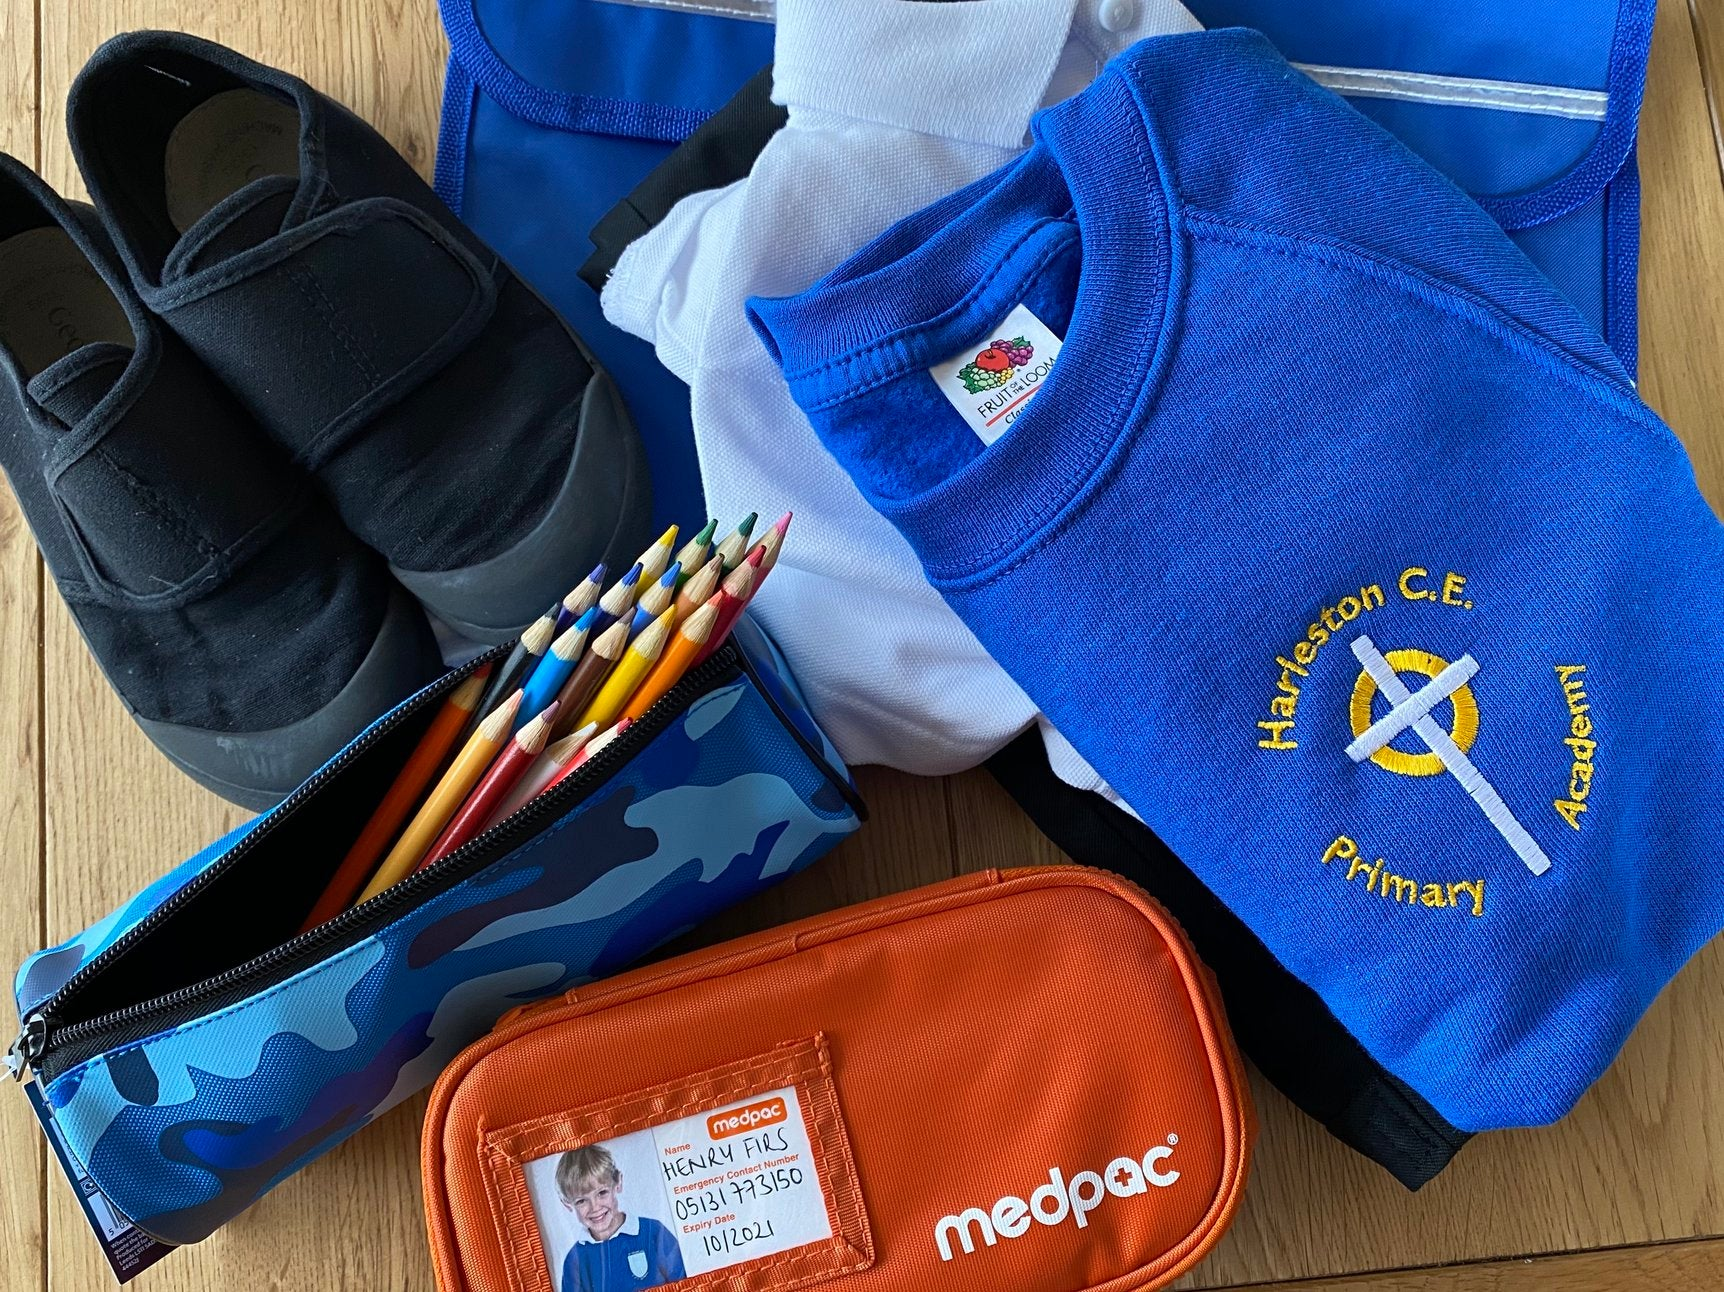 Medpac Practical Medicine Storage For Use At Home Or At School